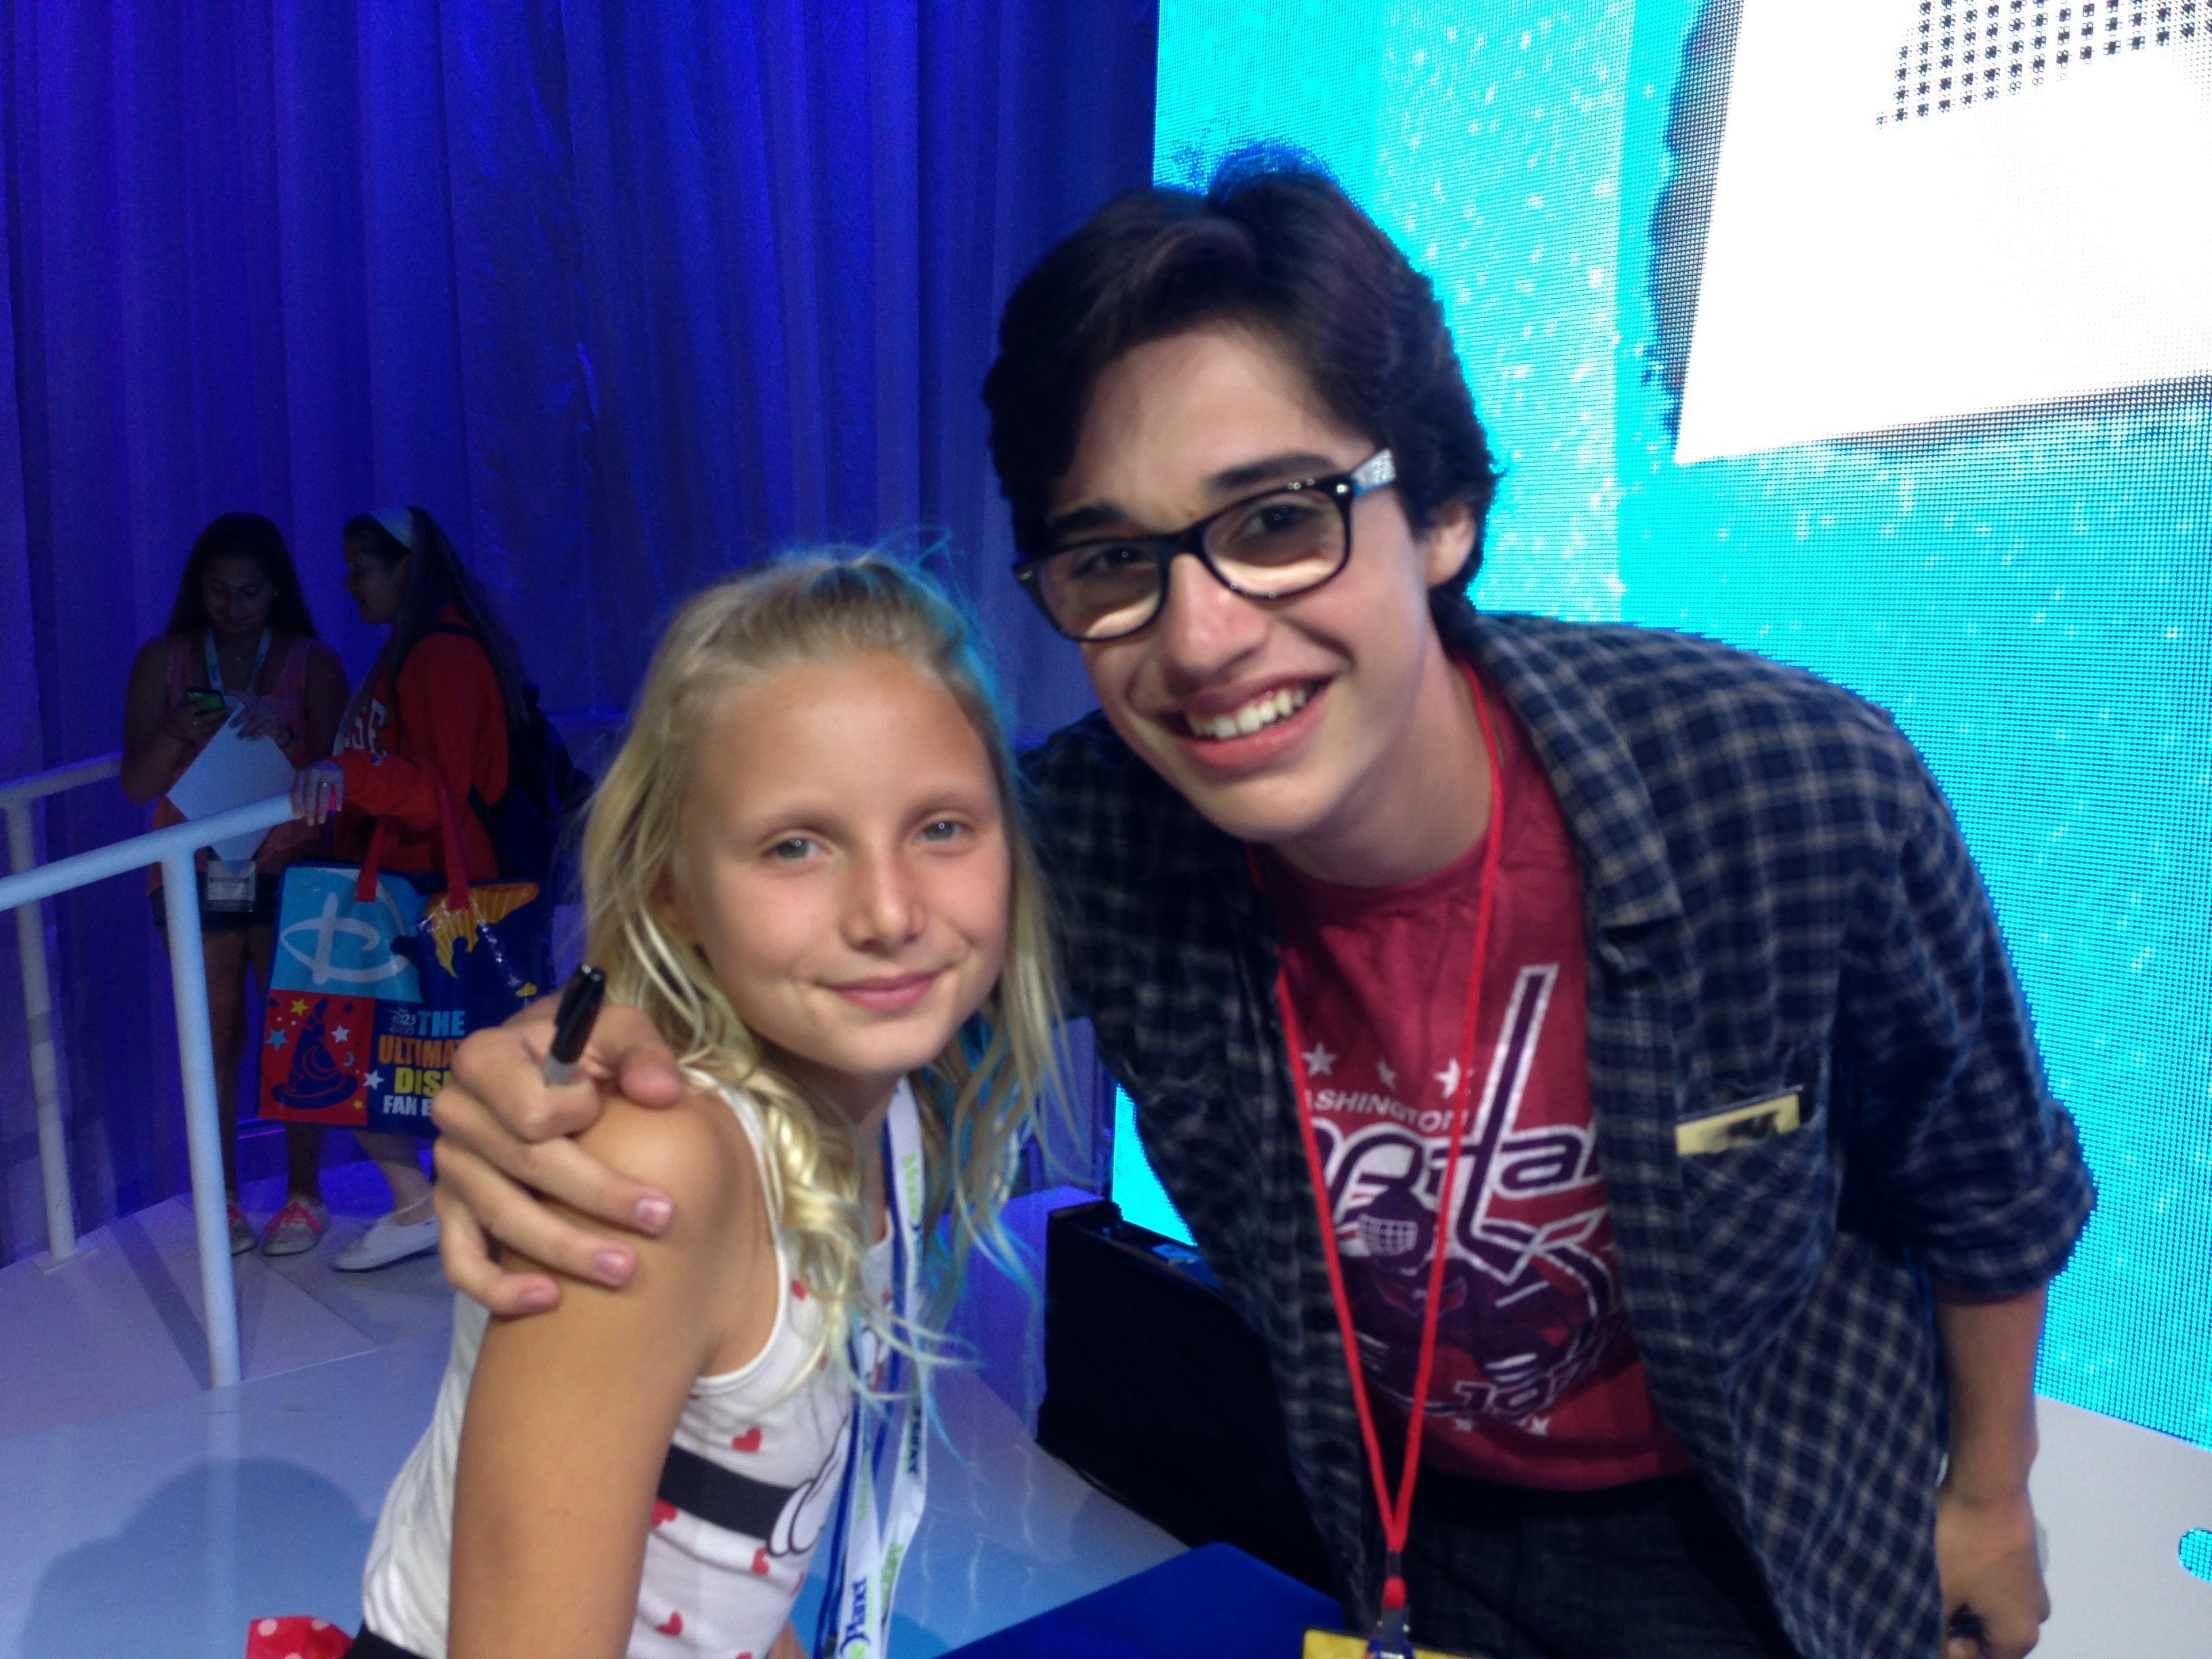 Liv And Maddie Real Names The liv and maddie cast meet